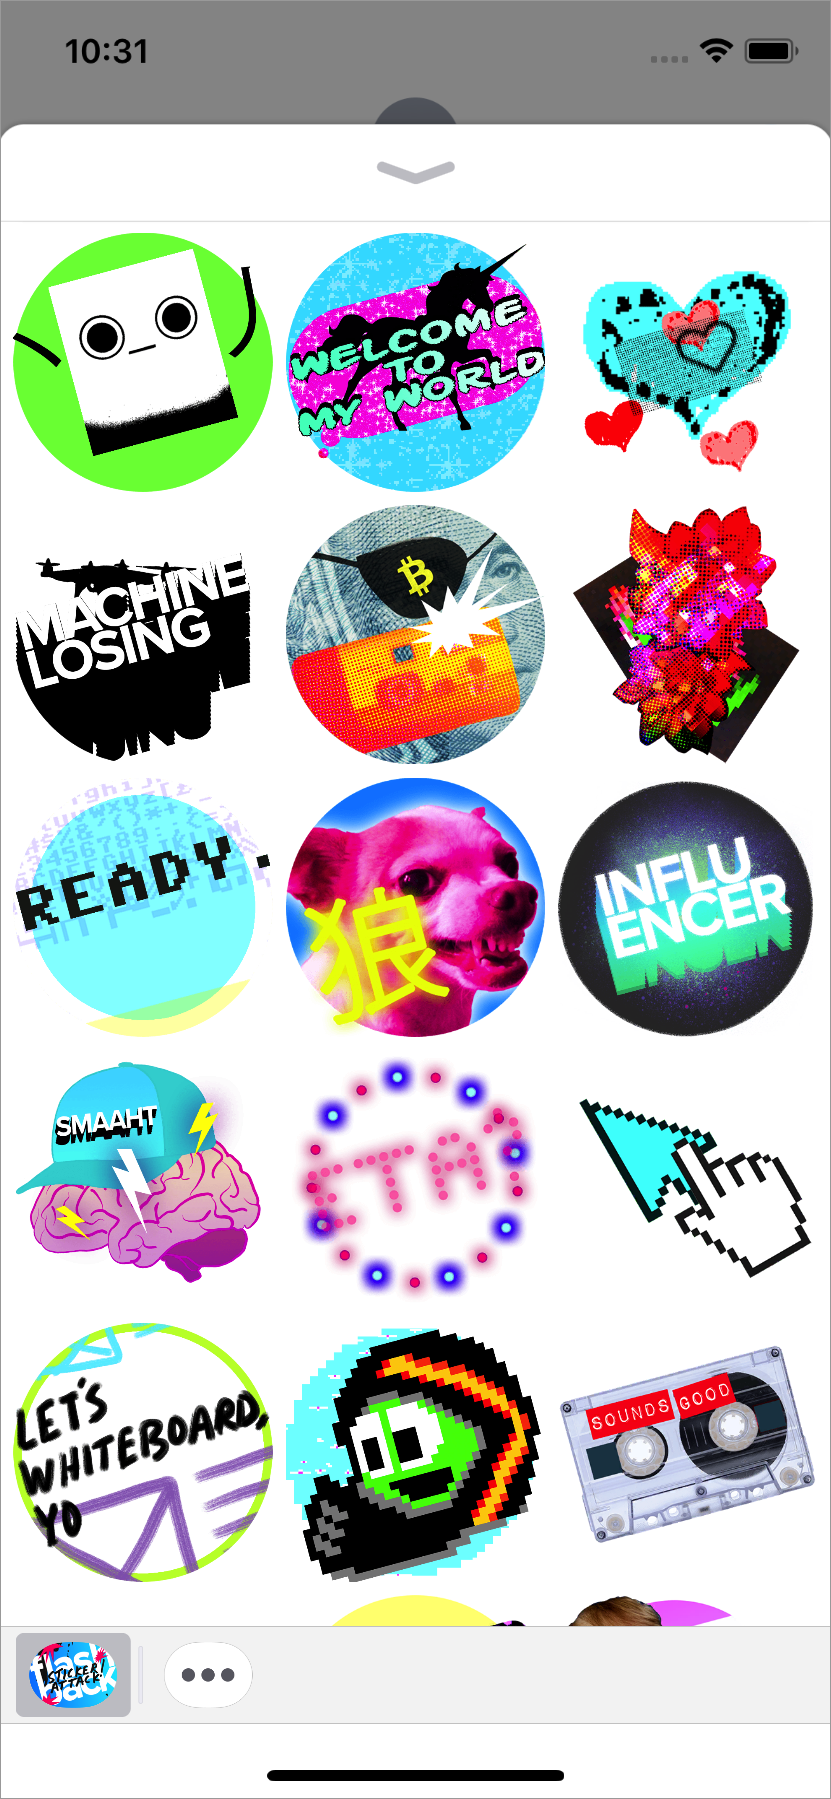 Flashback-Sticker-Attack-iMessage-03.png